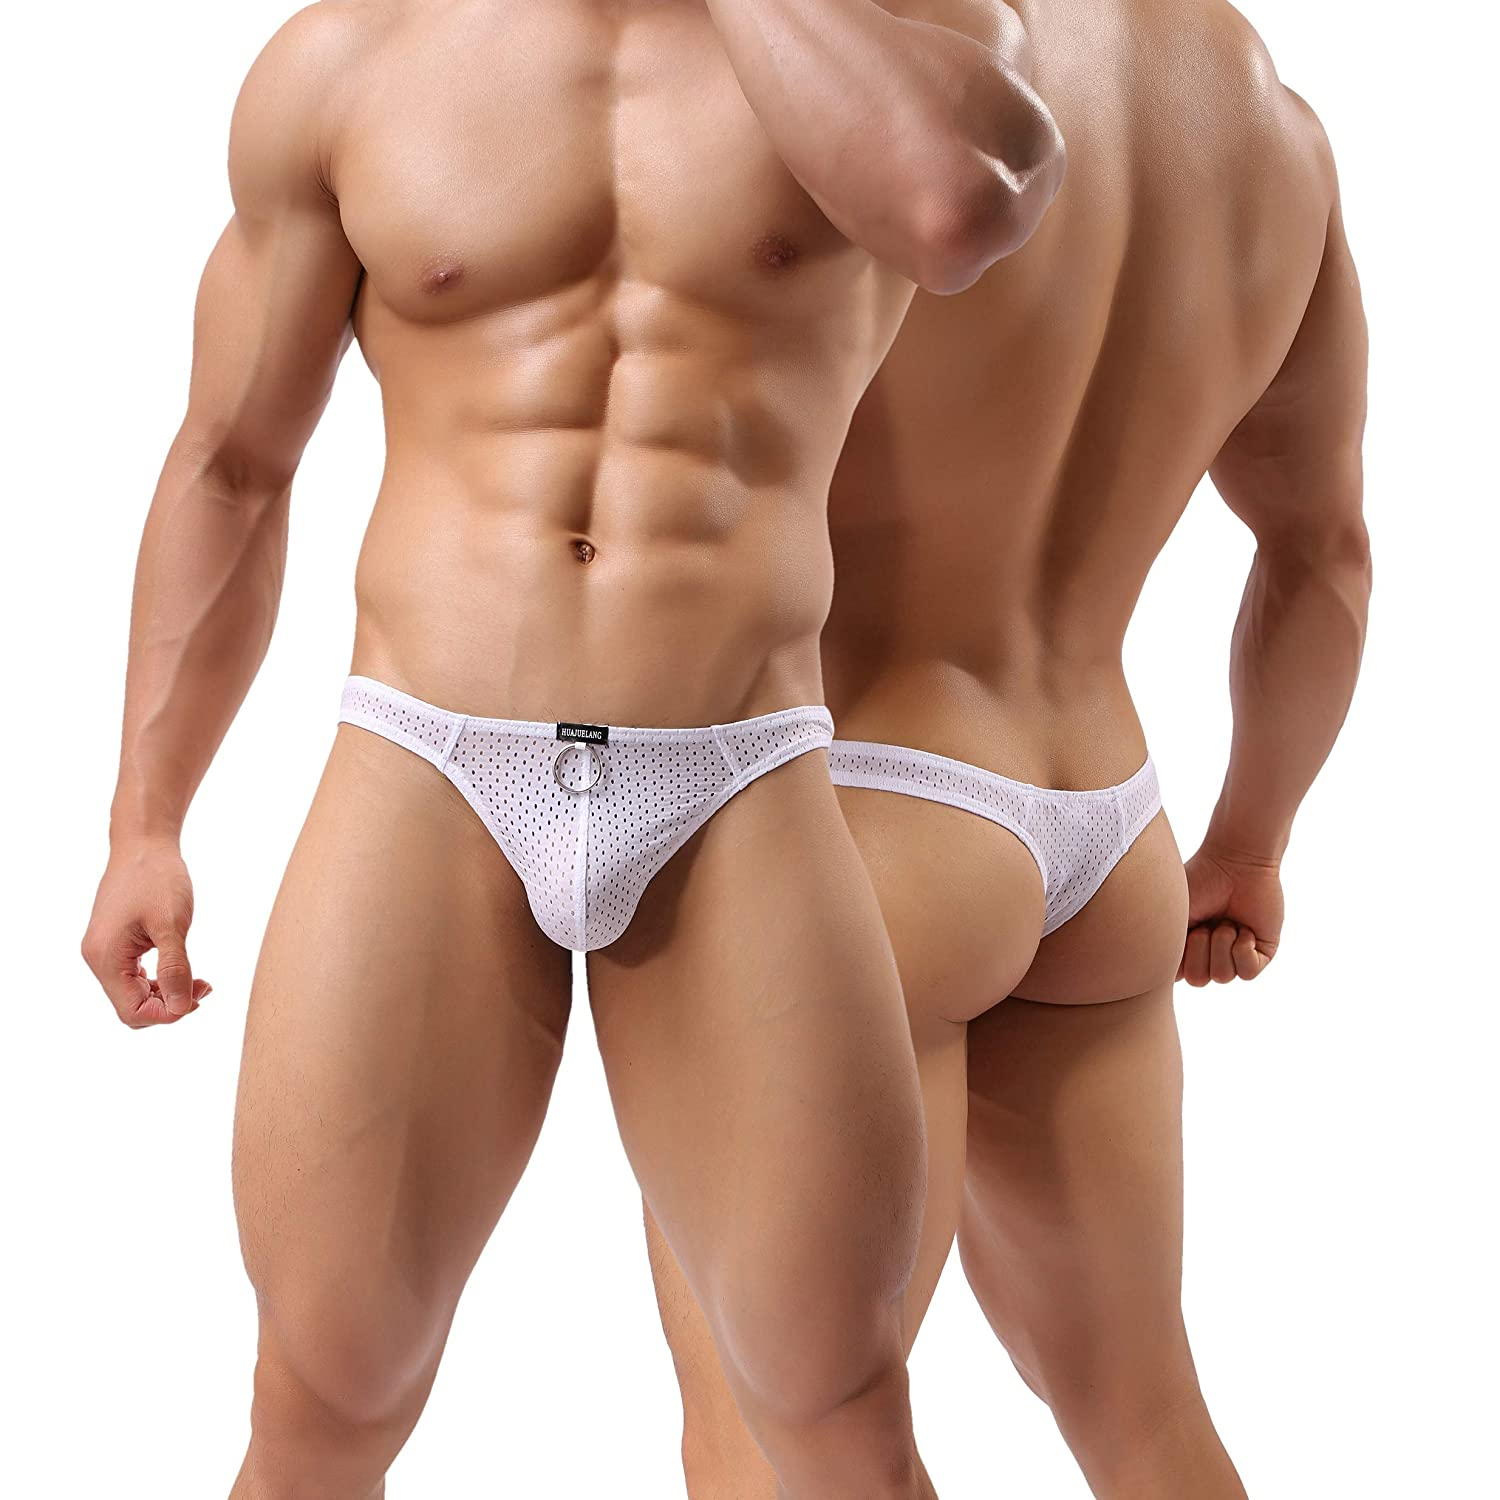 MuscleMate Hot Men's Thong Underwear, 2018 F/W Collections, Men's Thong Undie T-Back, Premium Quality Men' s Thong Undie T-Back